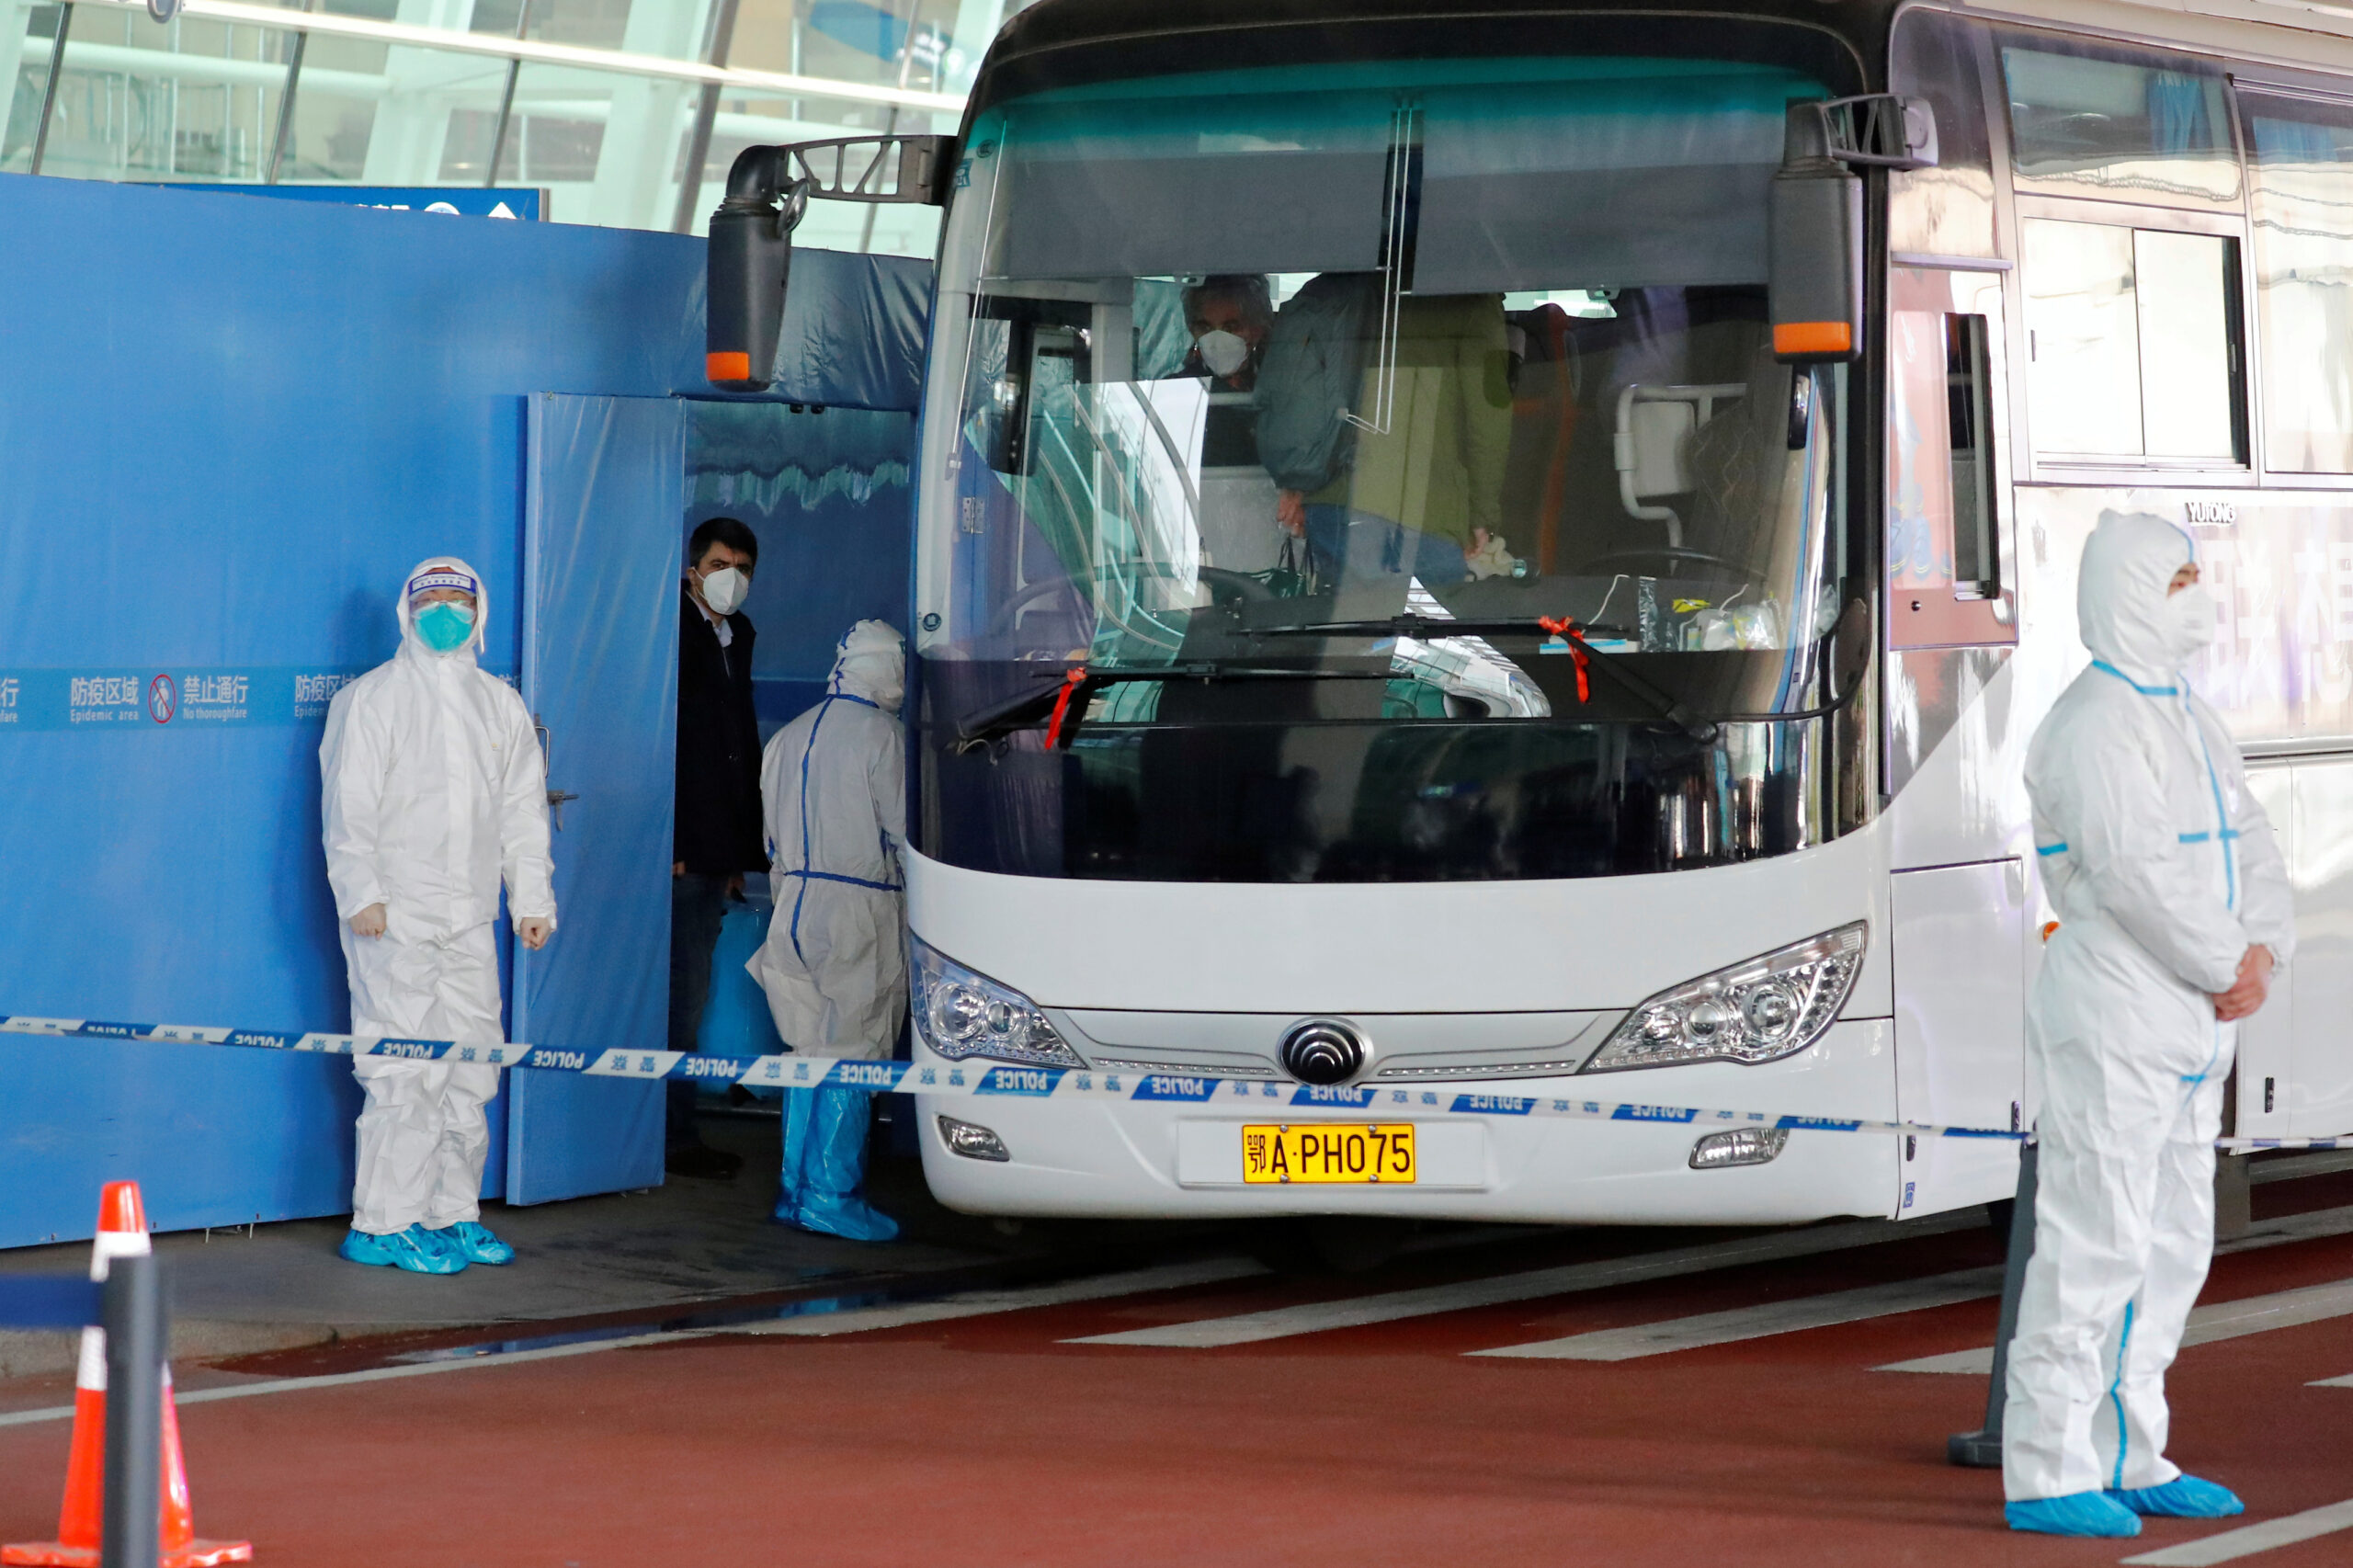 Members of the World Health Organisation (WHO) team tasked with investigating the origins of the coronavirus disease (COVID-19) pandemic board a bus before leaving Wuhan Tianhe International Airport in Wuhan, Hubei province, China January 14, 2021. REUTERS/Thomas Peter